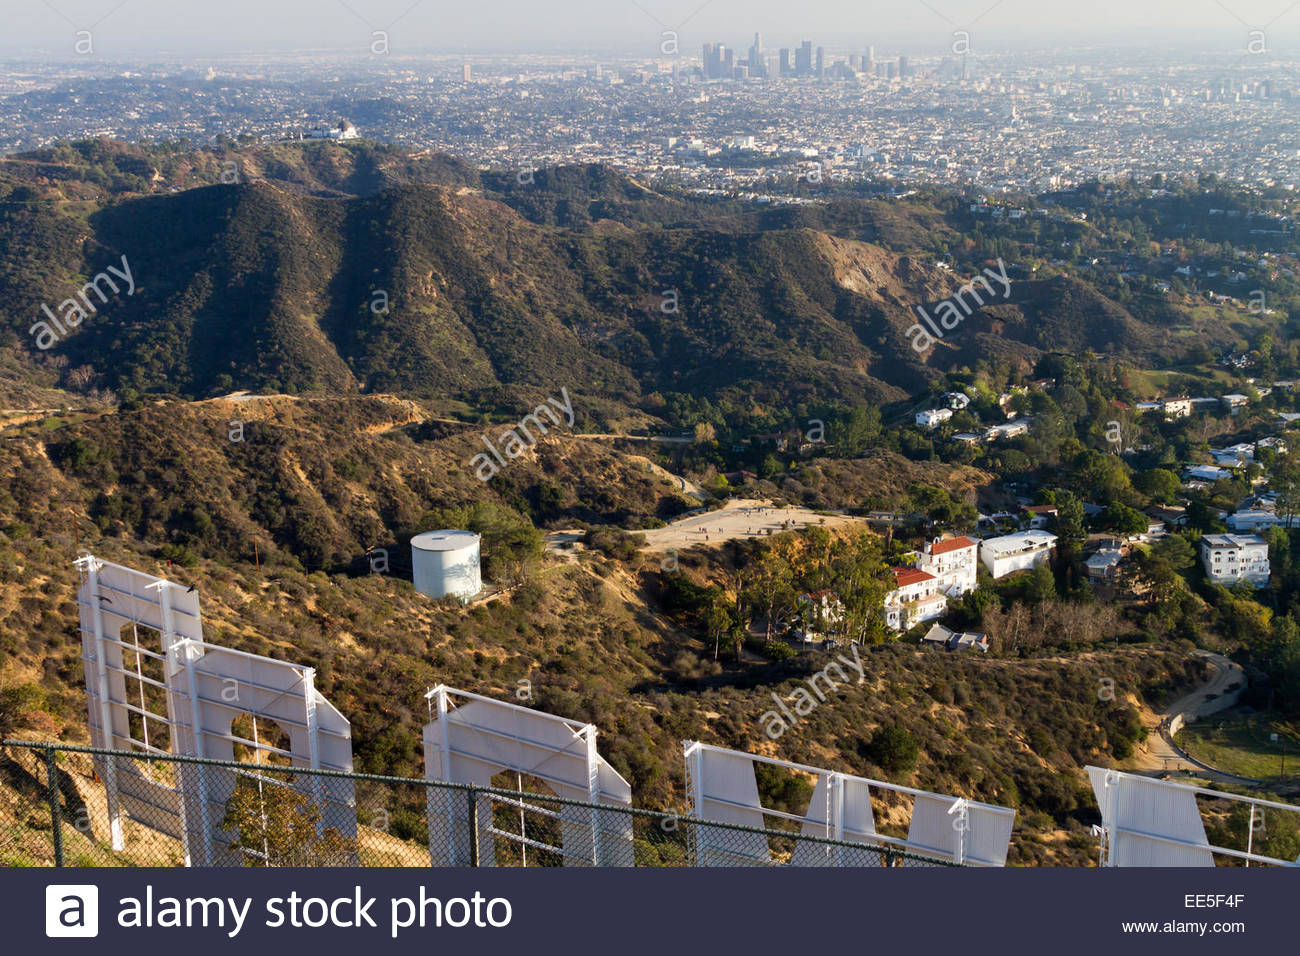 View of downtown Los Angeles with Hollywood sign in foreground - USA - California - Los Angeles - Stock Image